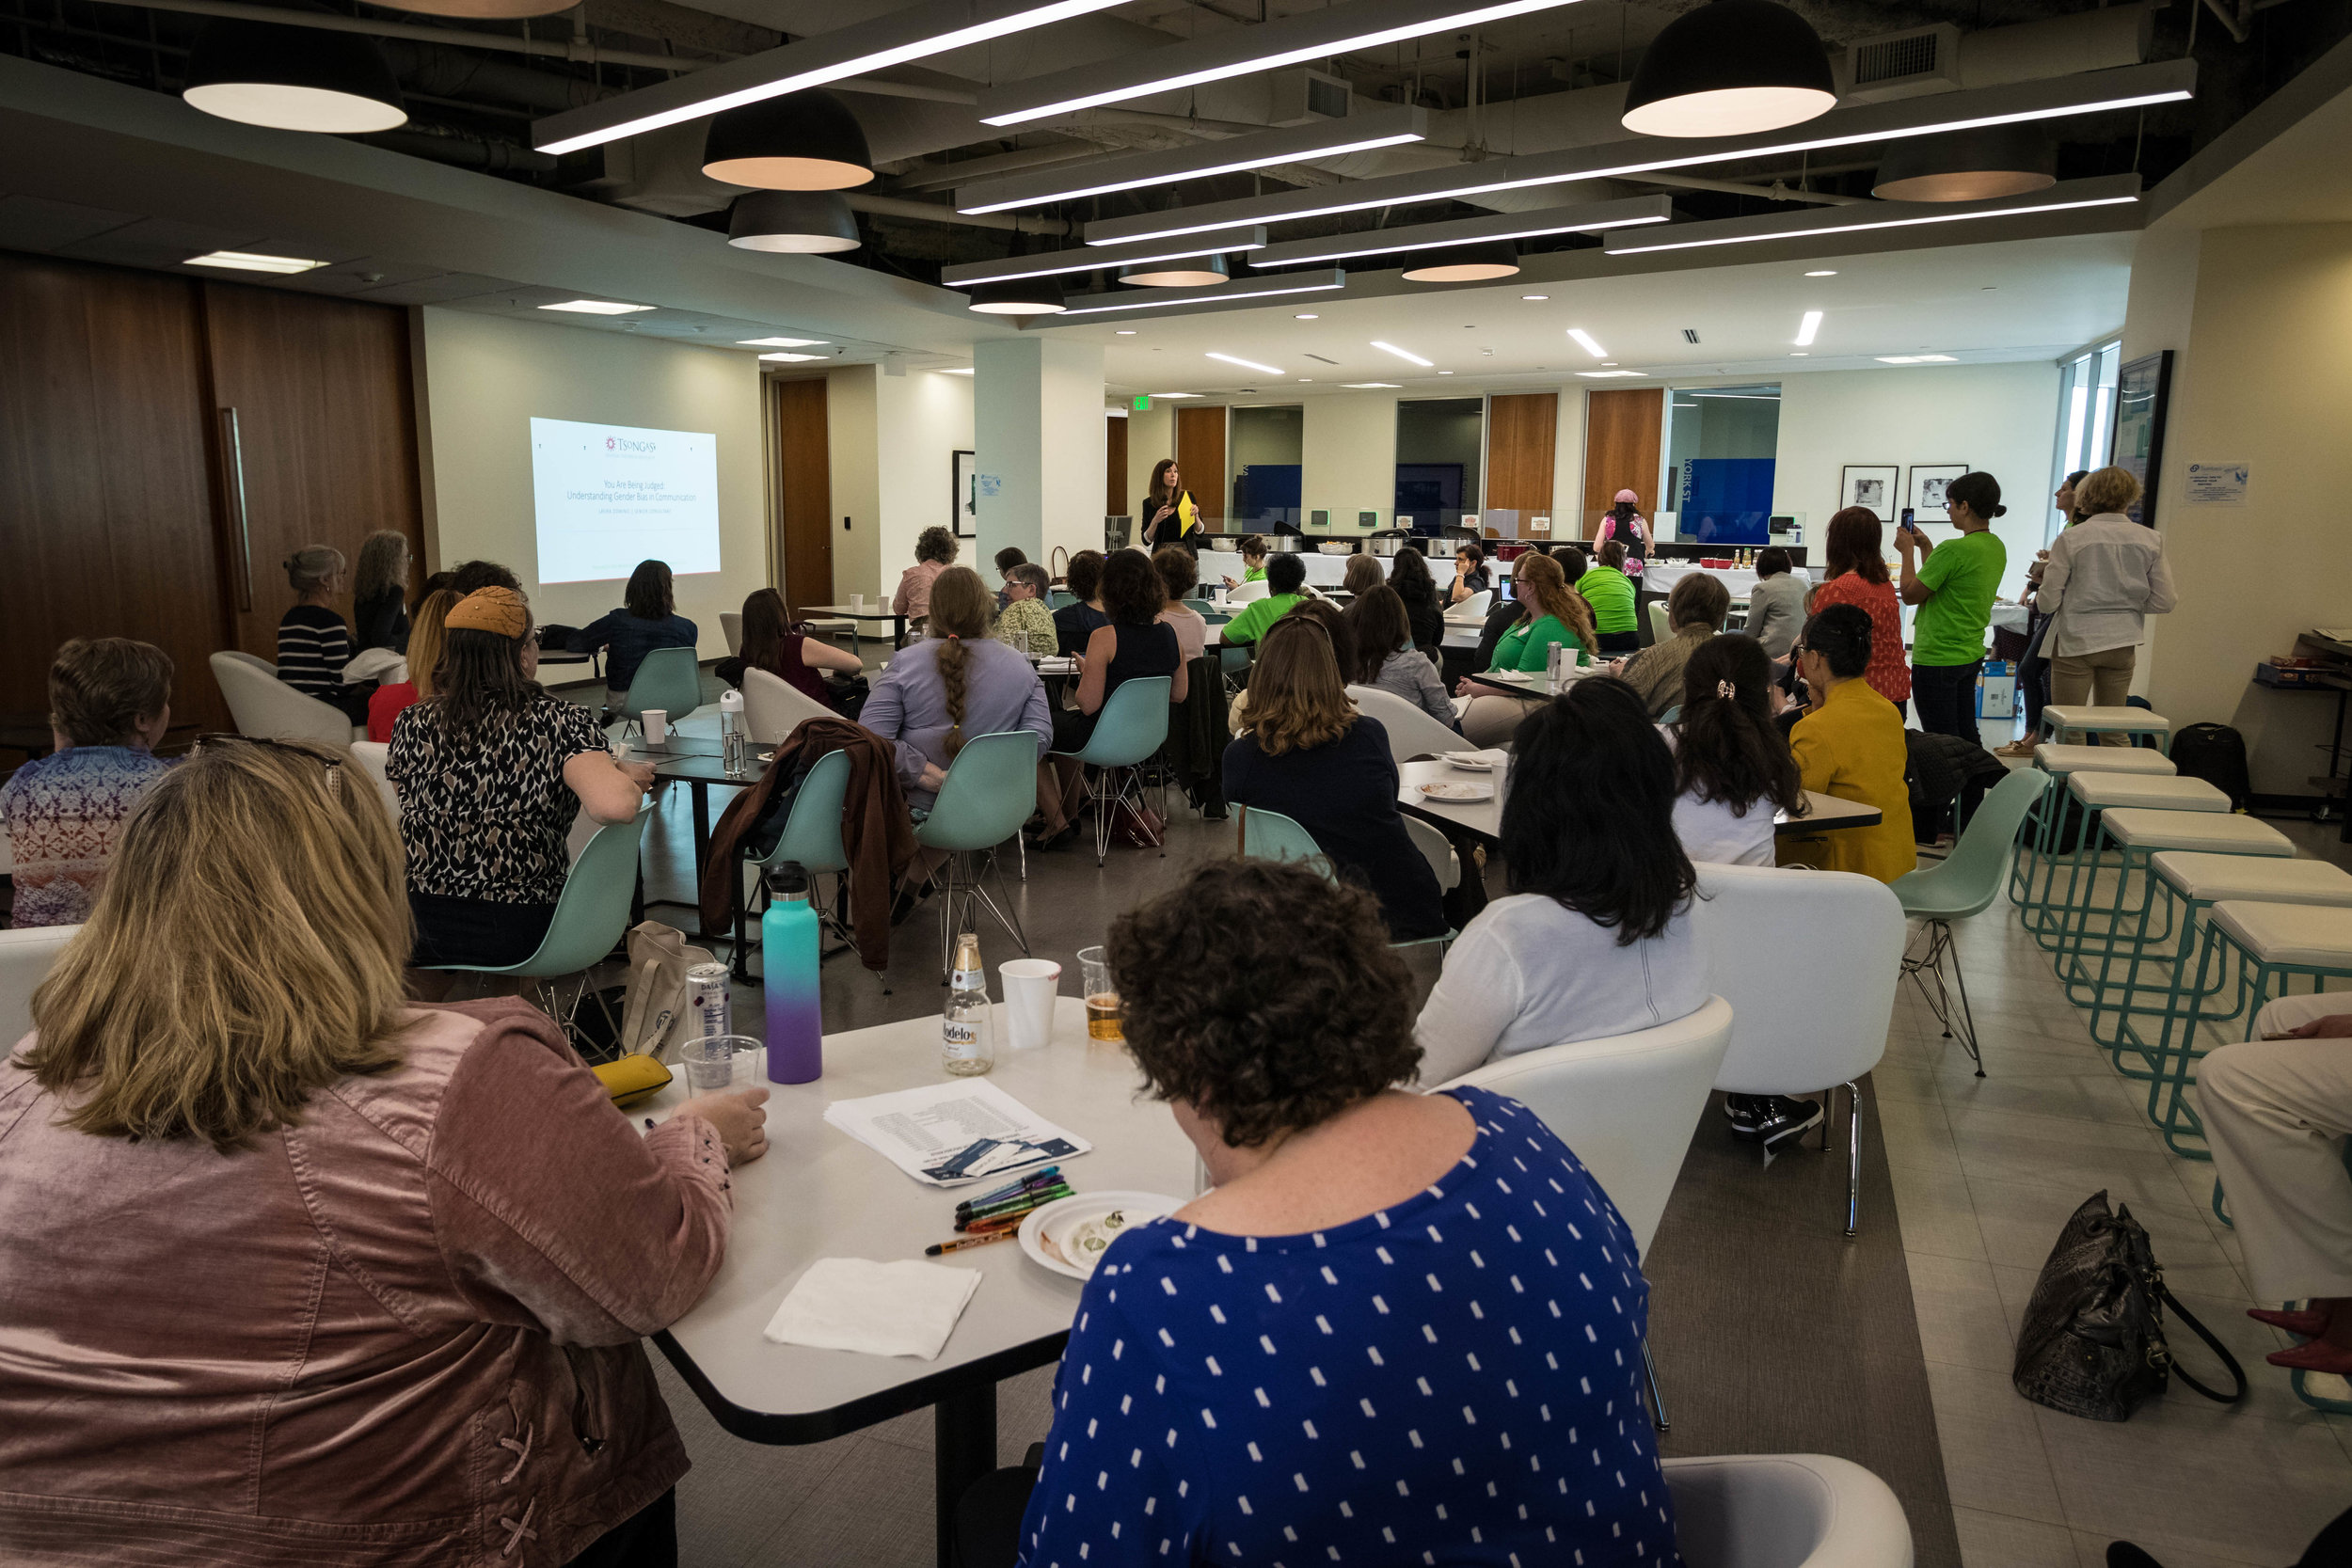 PDXWIT Experienced Women in Tech @ Corvel, 4/30/19 - Attendees listen to the presentation